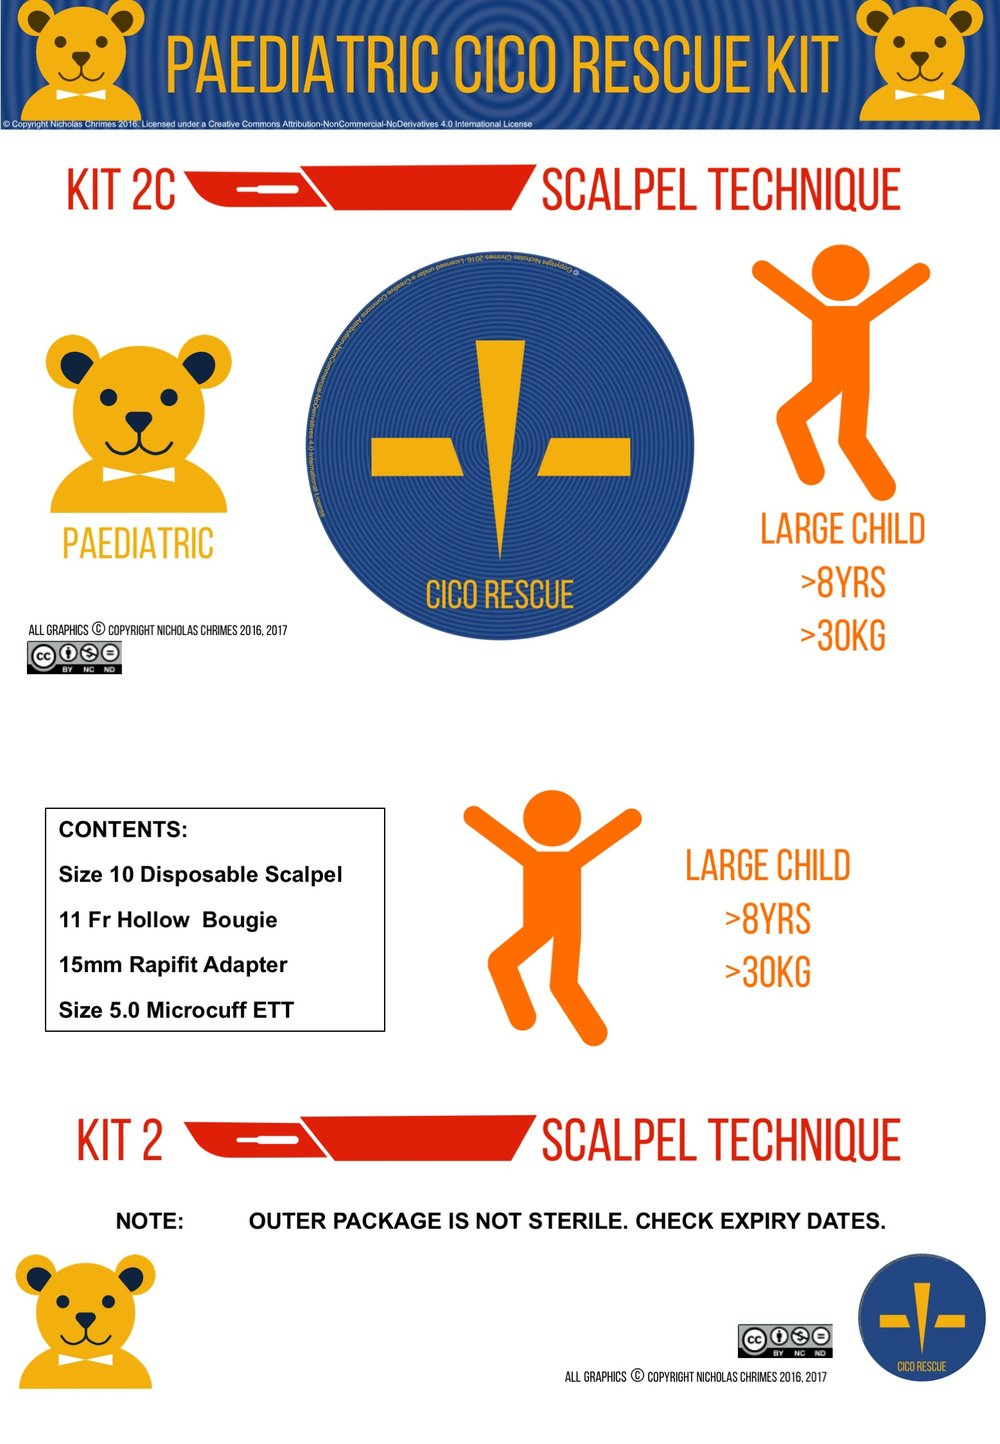 Large Child Scalpe CICO Rescue Kit - Complete Labels & Contents